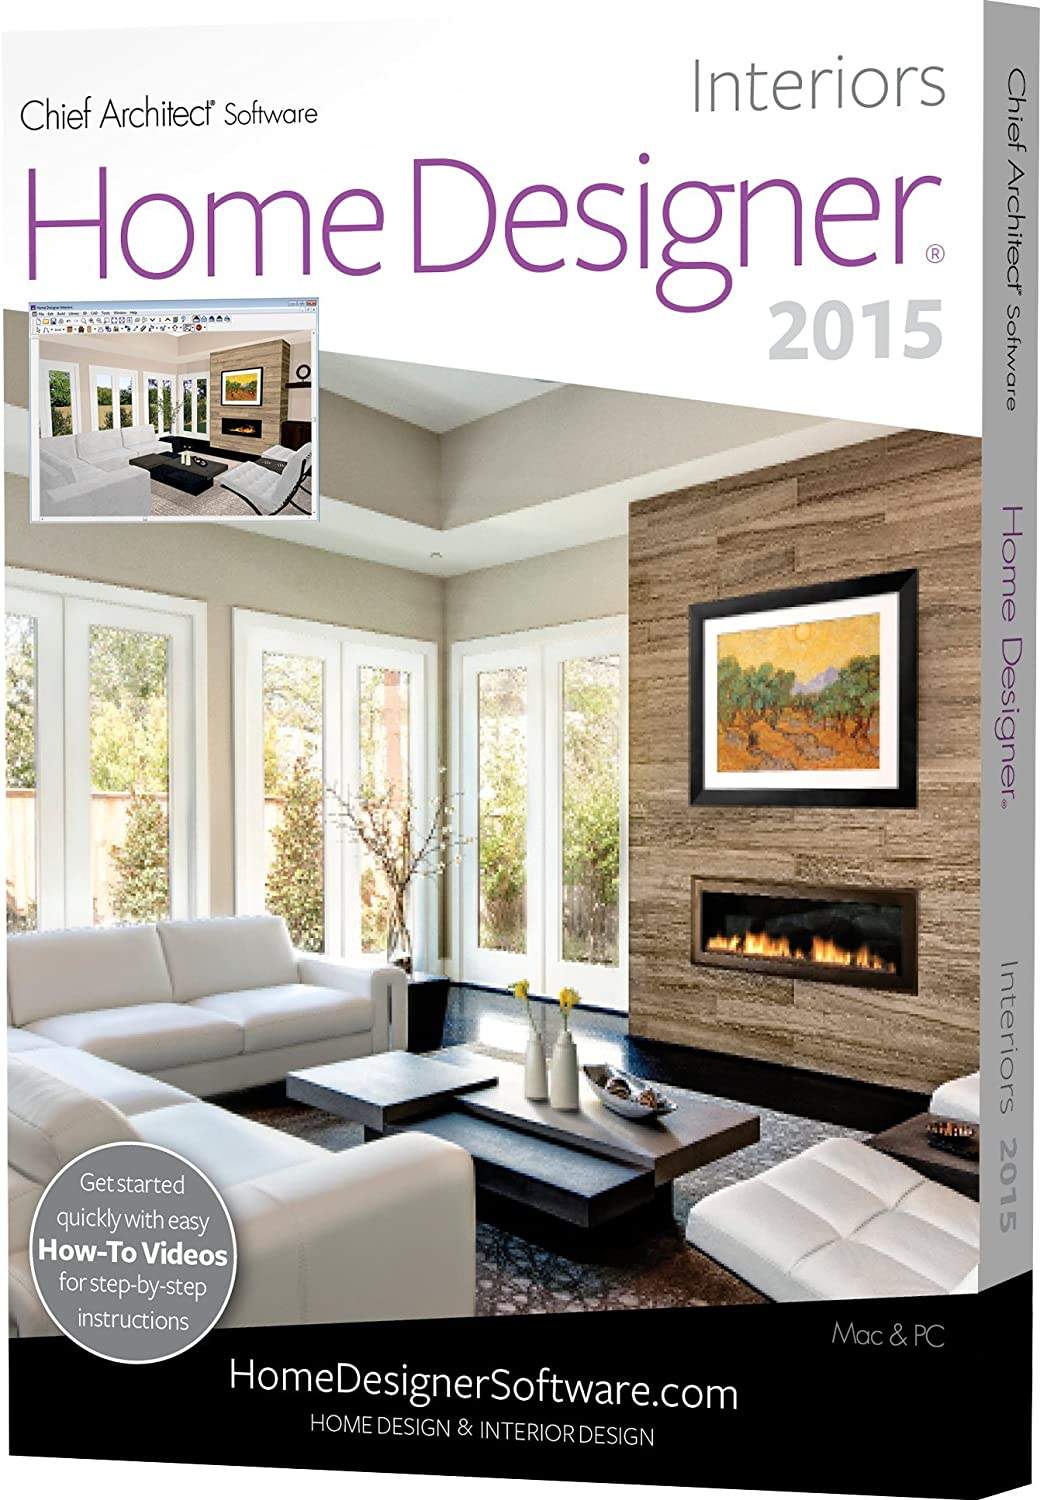 Home Designer Interiors 2015 PC Mac Amazoncouk Software